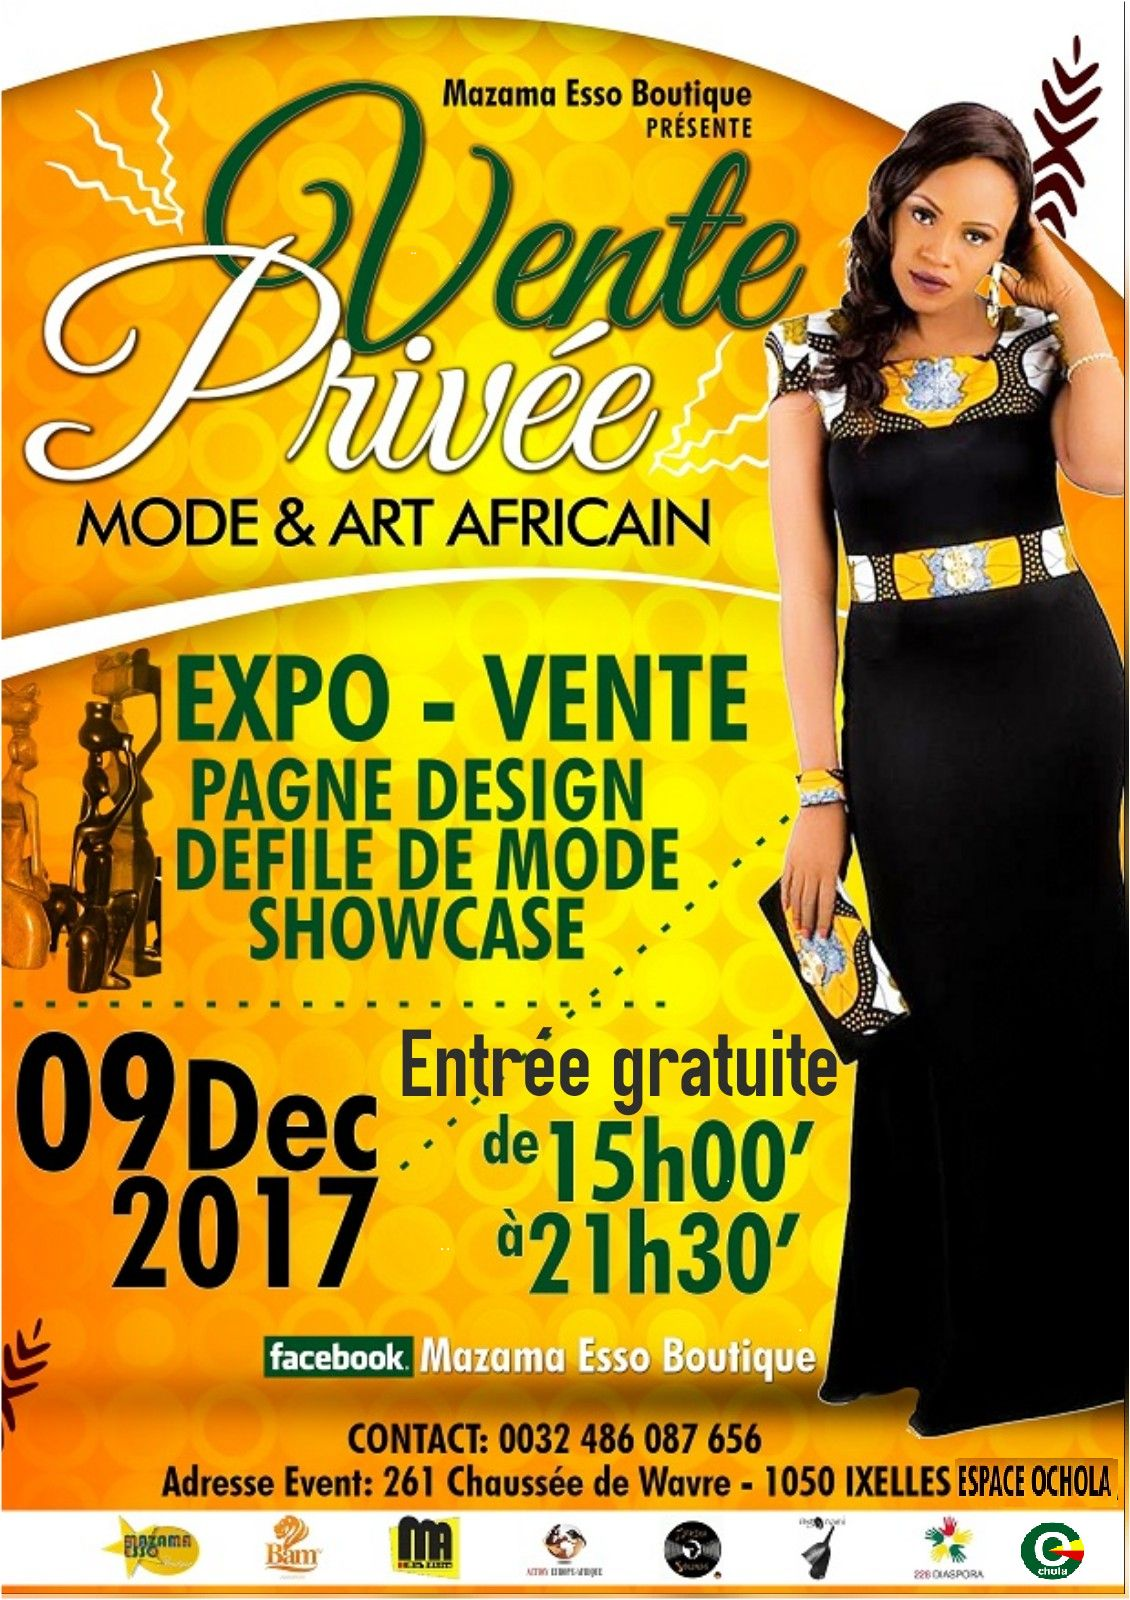 bonplan mazamaessoboutique exposition vente priv e mode et art africain le 09 12 2017. Black Bedroom Furniture Sets. Home Design Ideas